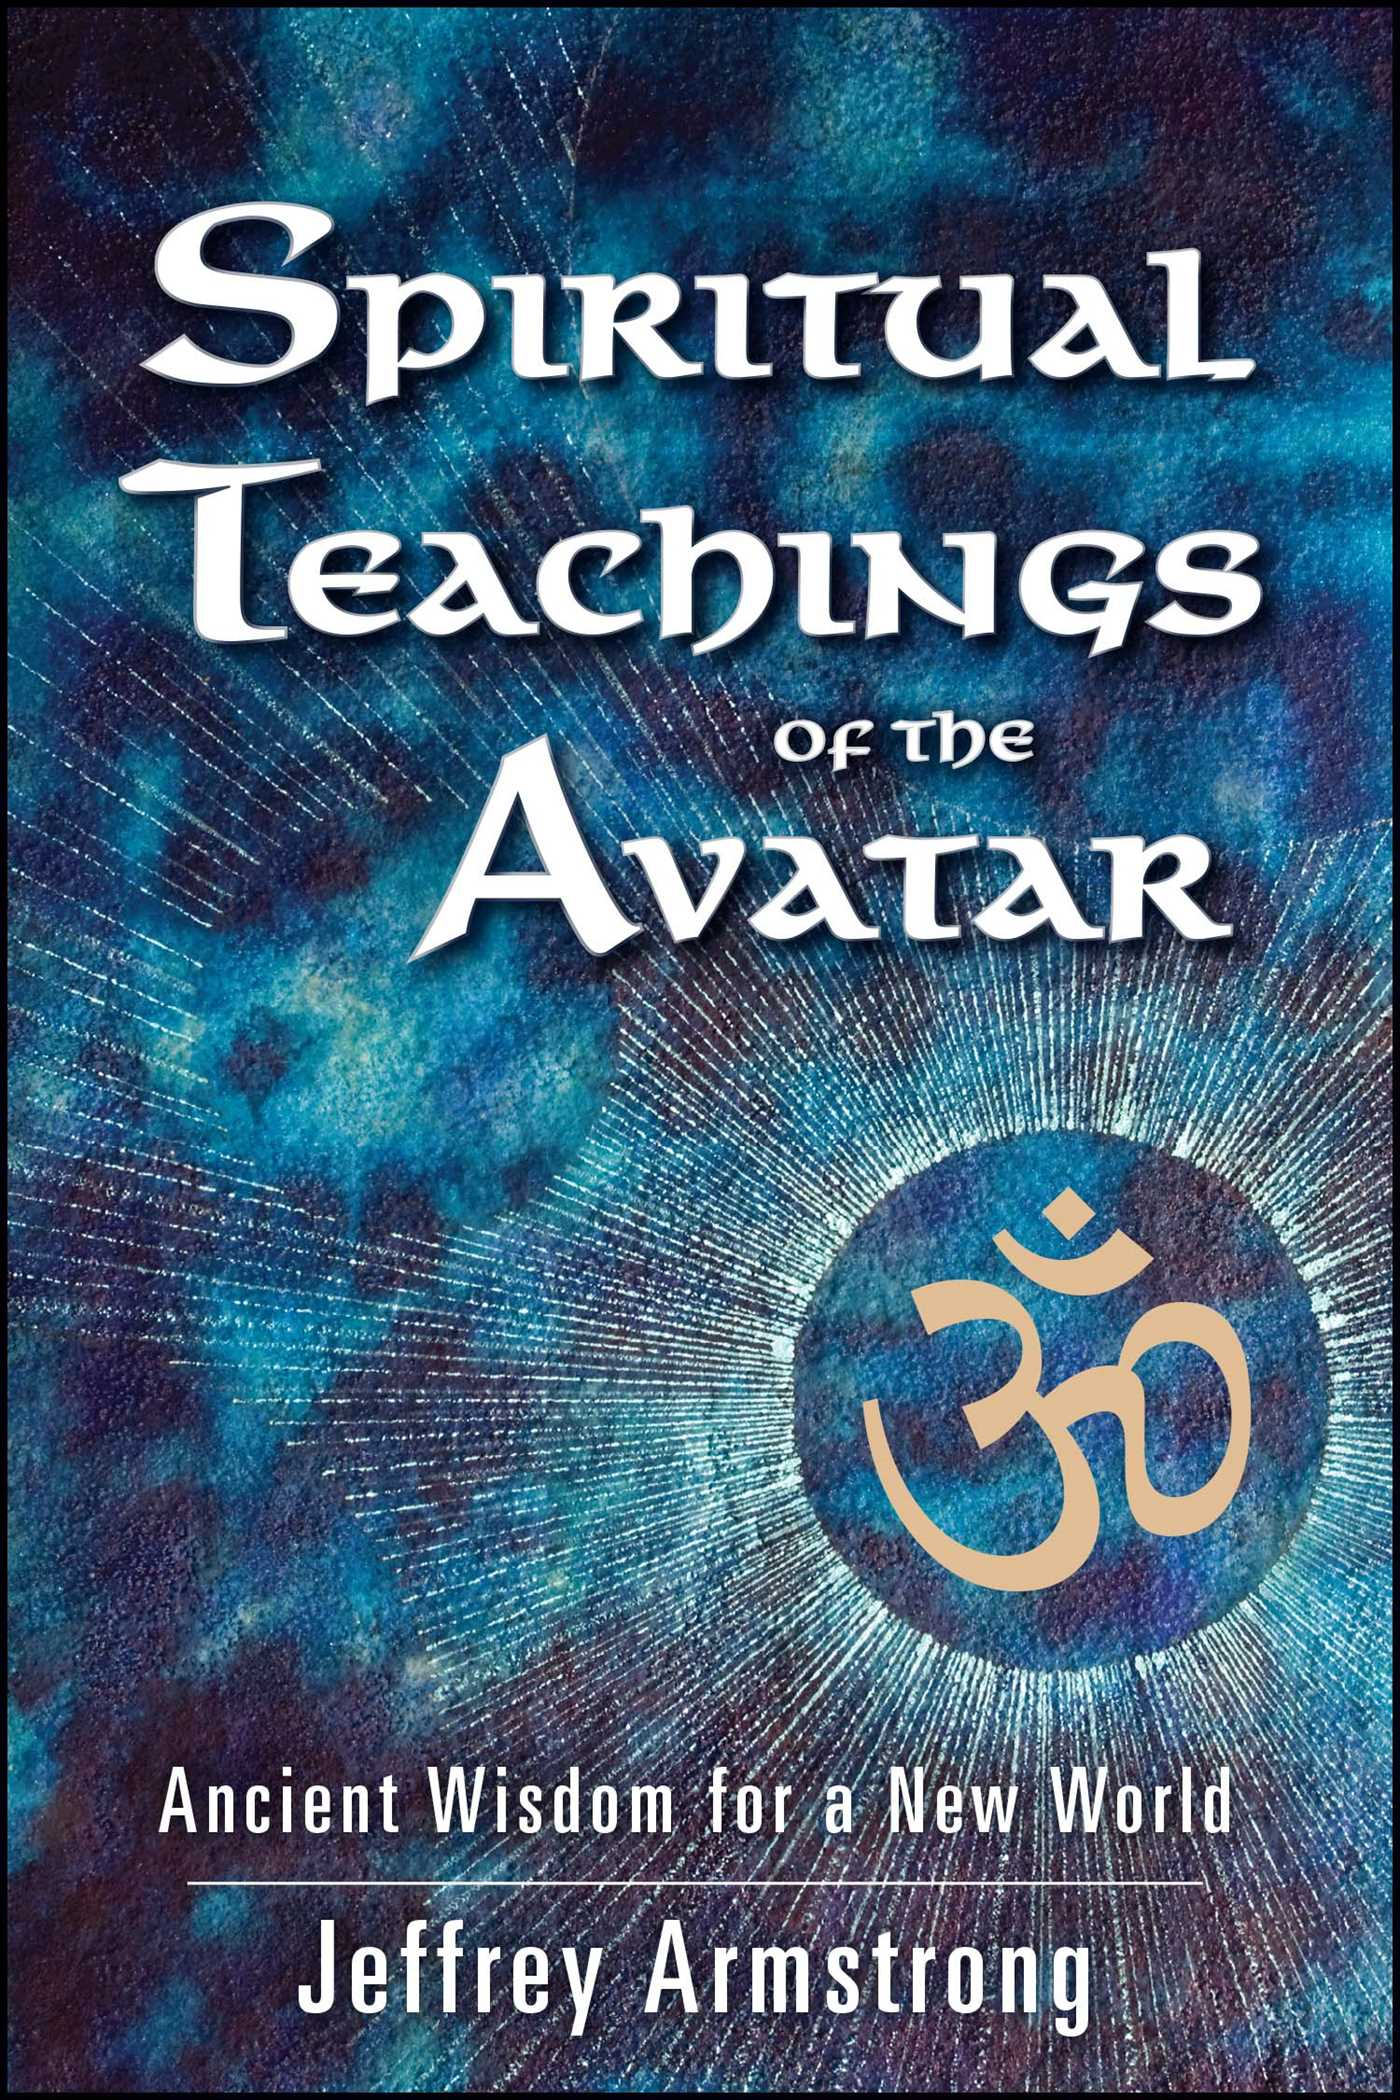 Spiritual teachings of the avatar 9781439197028 hr